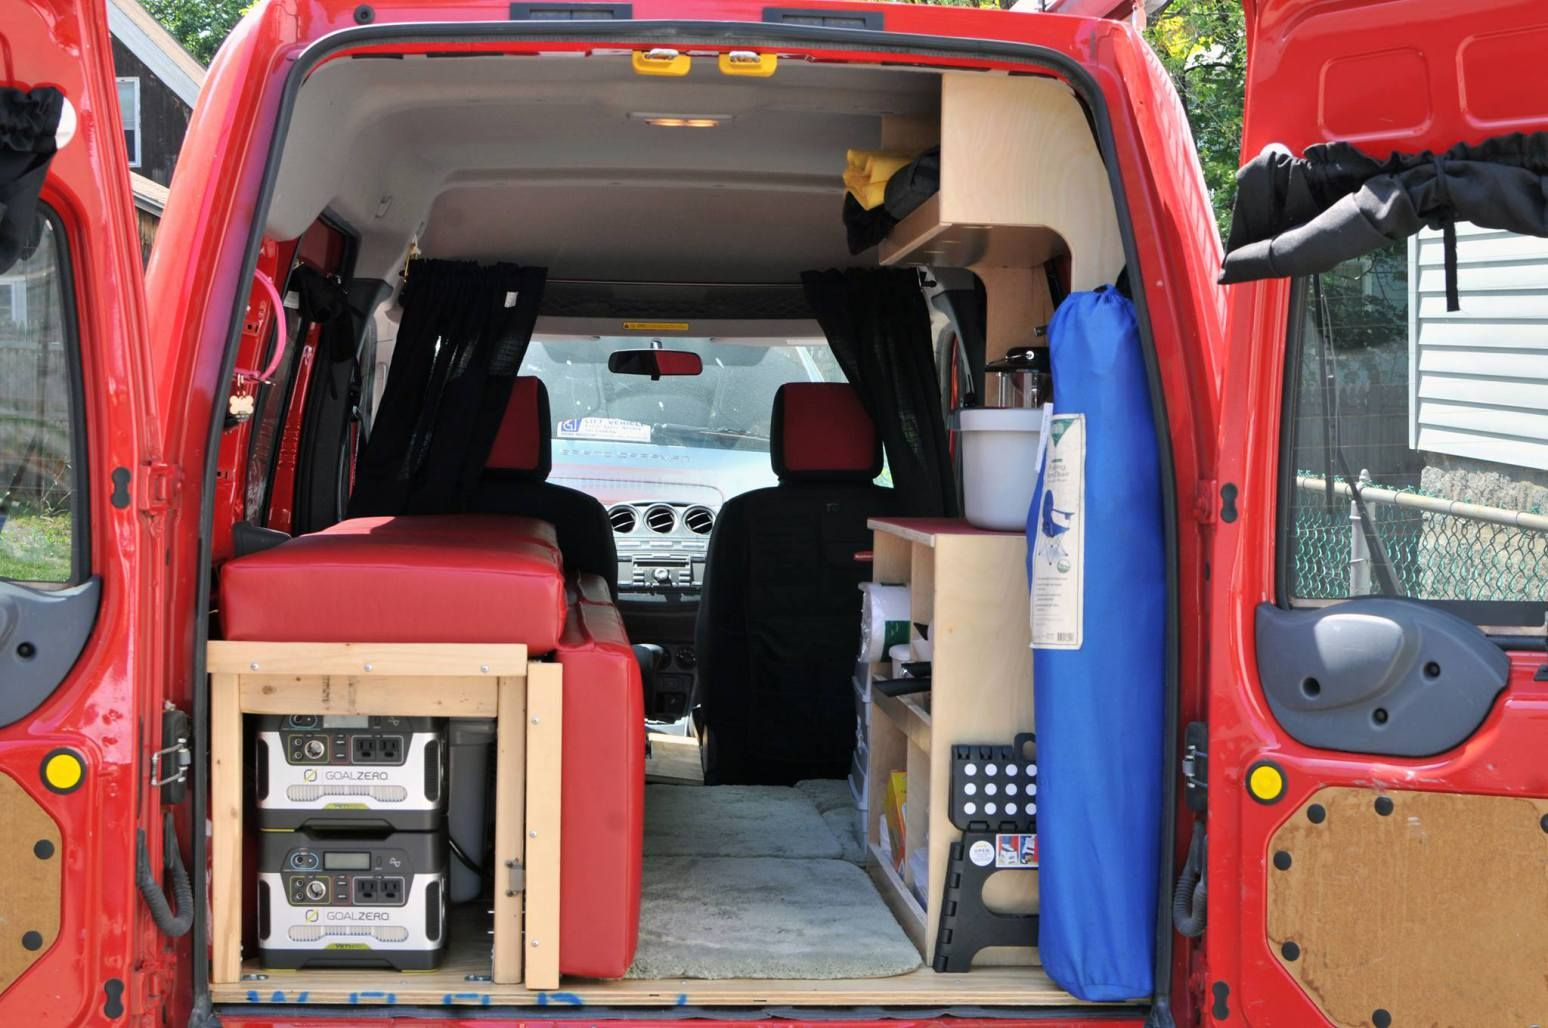 A New Trail Dog The 2010 Ford Transit Connect Ford Transit